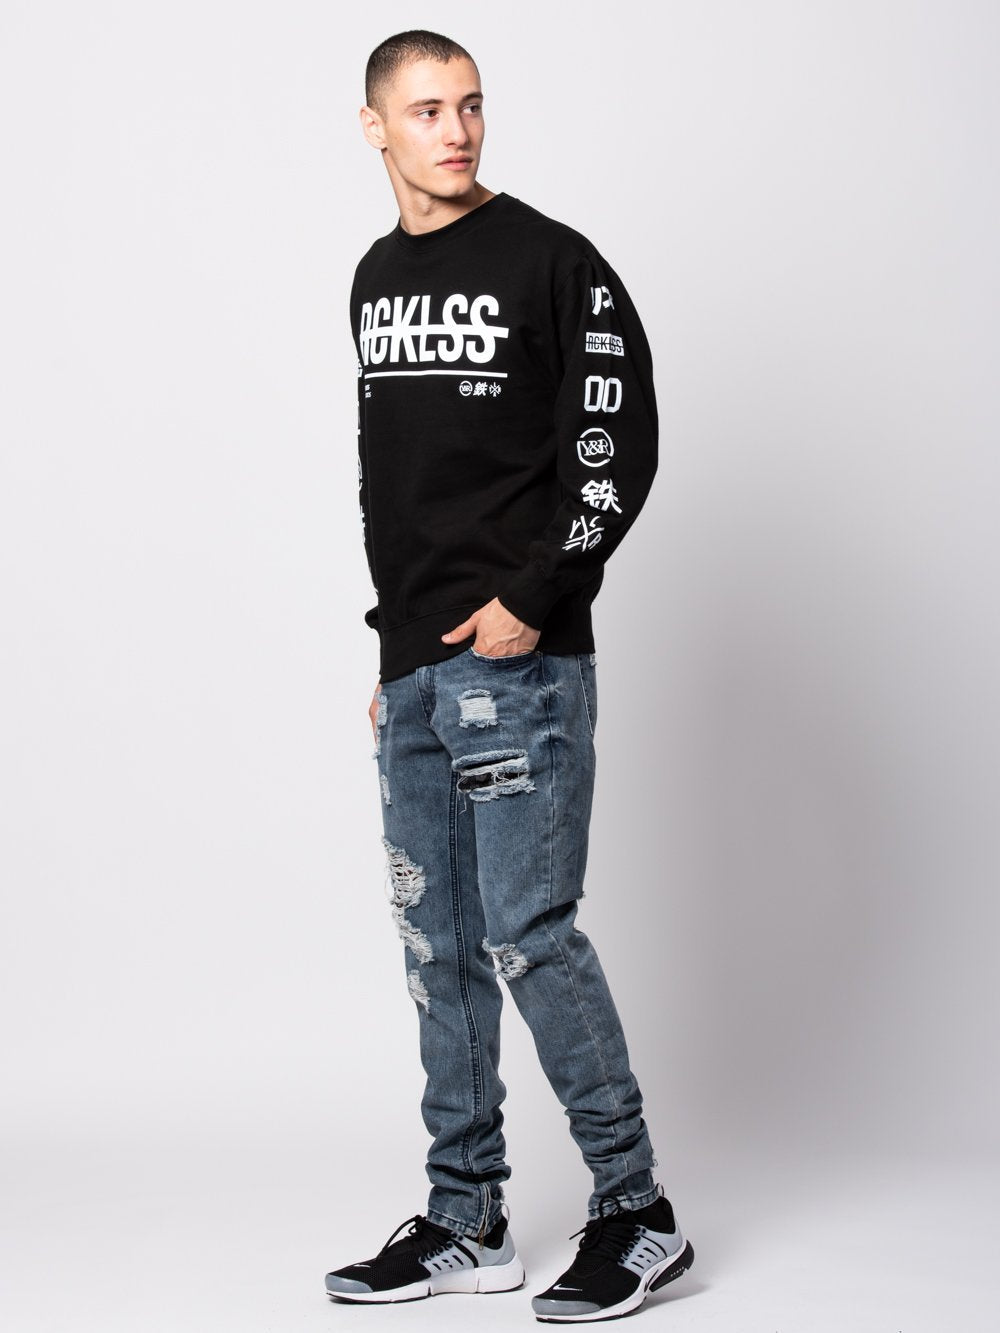 Young and Reckless Mens - Tops - Crewnecks Kyoto Crewneck Sweater - Black/White